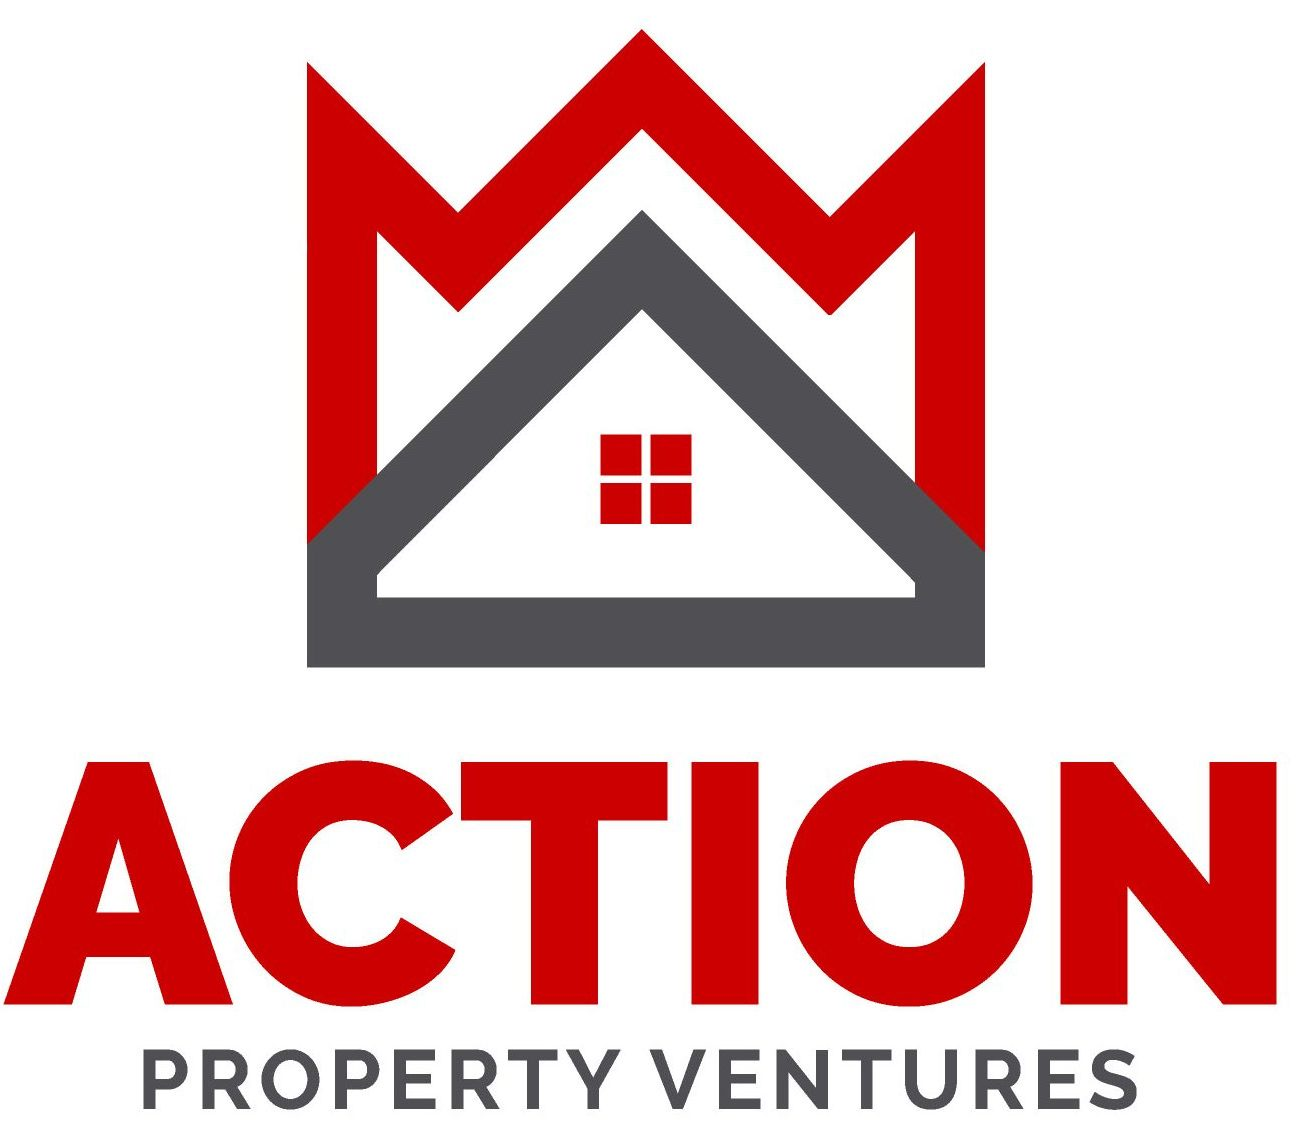 Action Property Ventures